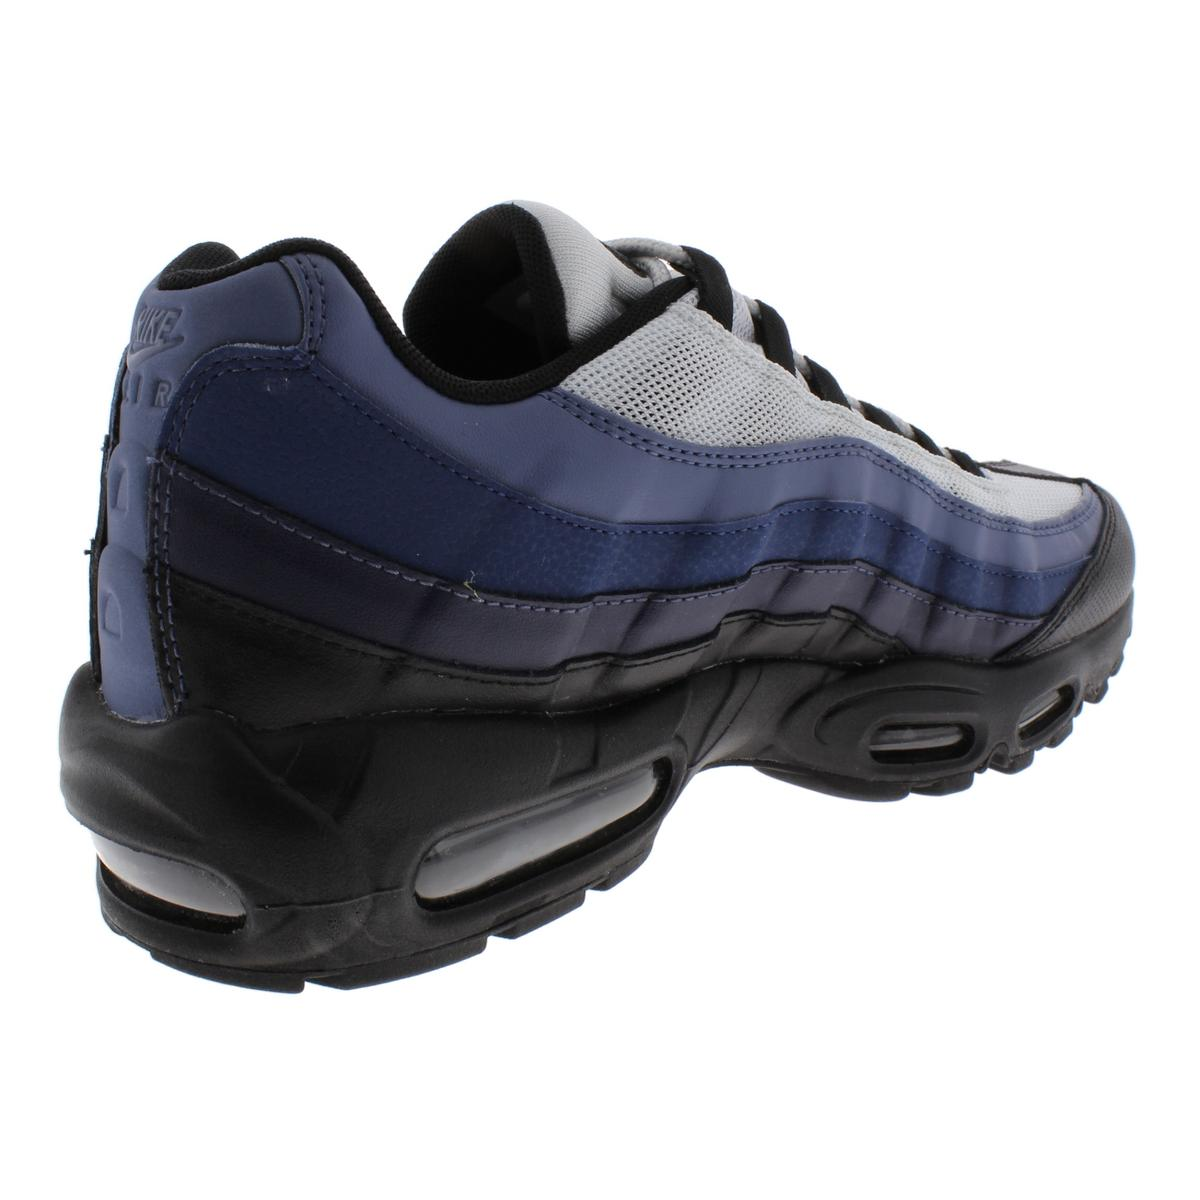 sale retailer 858fc 370ab Nike Air Max 95 Essential Mens 749766-028 Black Obsidian Running Shoes Size  8.5. About this product. Picture 1 of 4  Picture 2 of 4  Picture 3 of 4   Picture ...